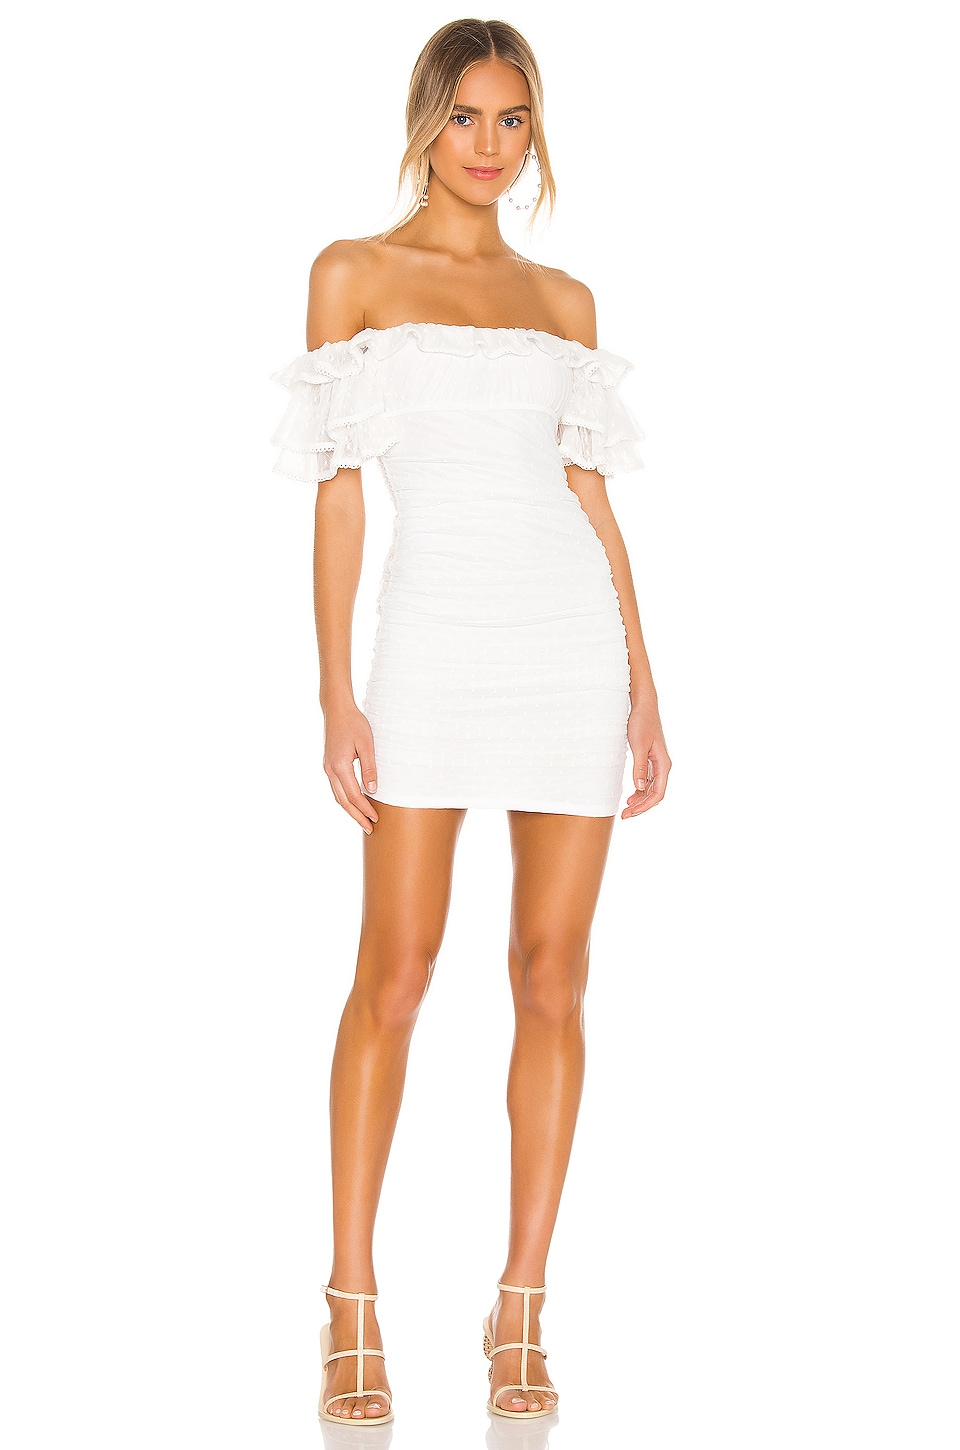 Eva Mini Dress             Camila Coelho                                                                                                       CA$ 300.48 18